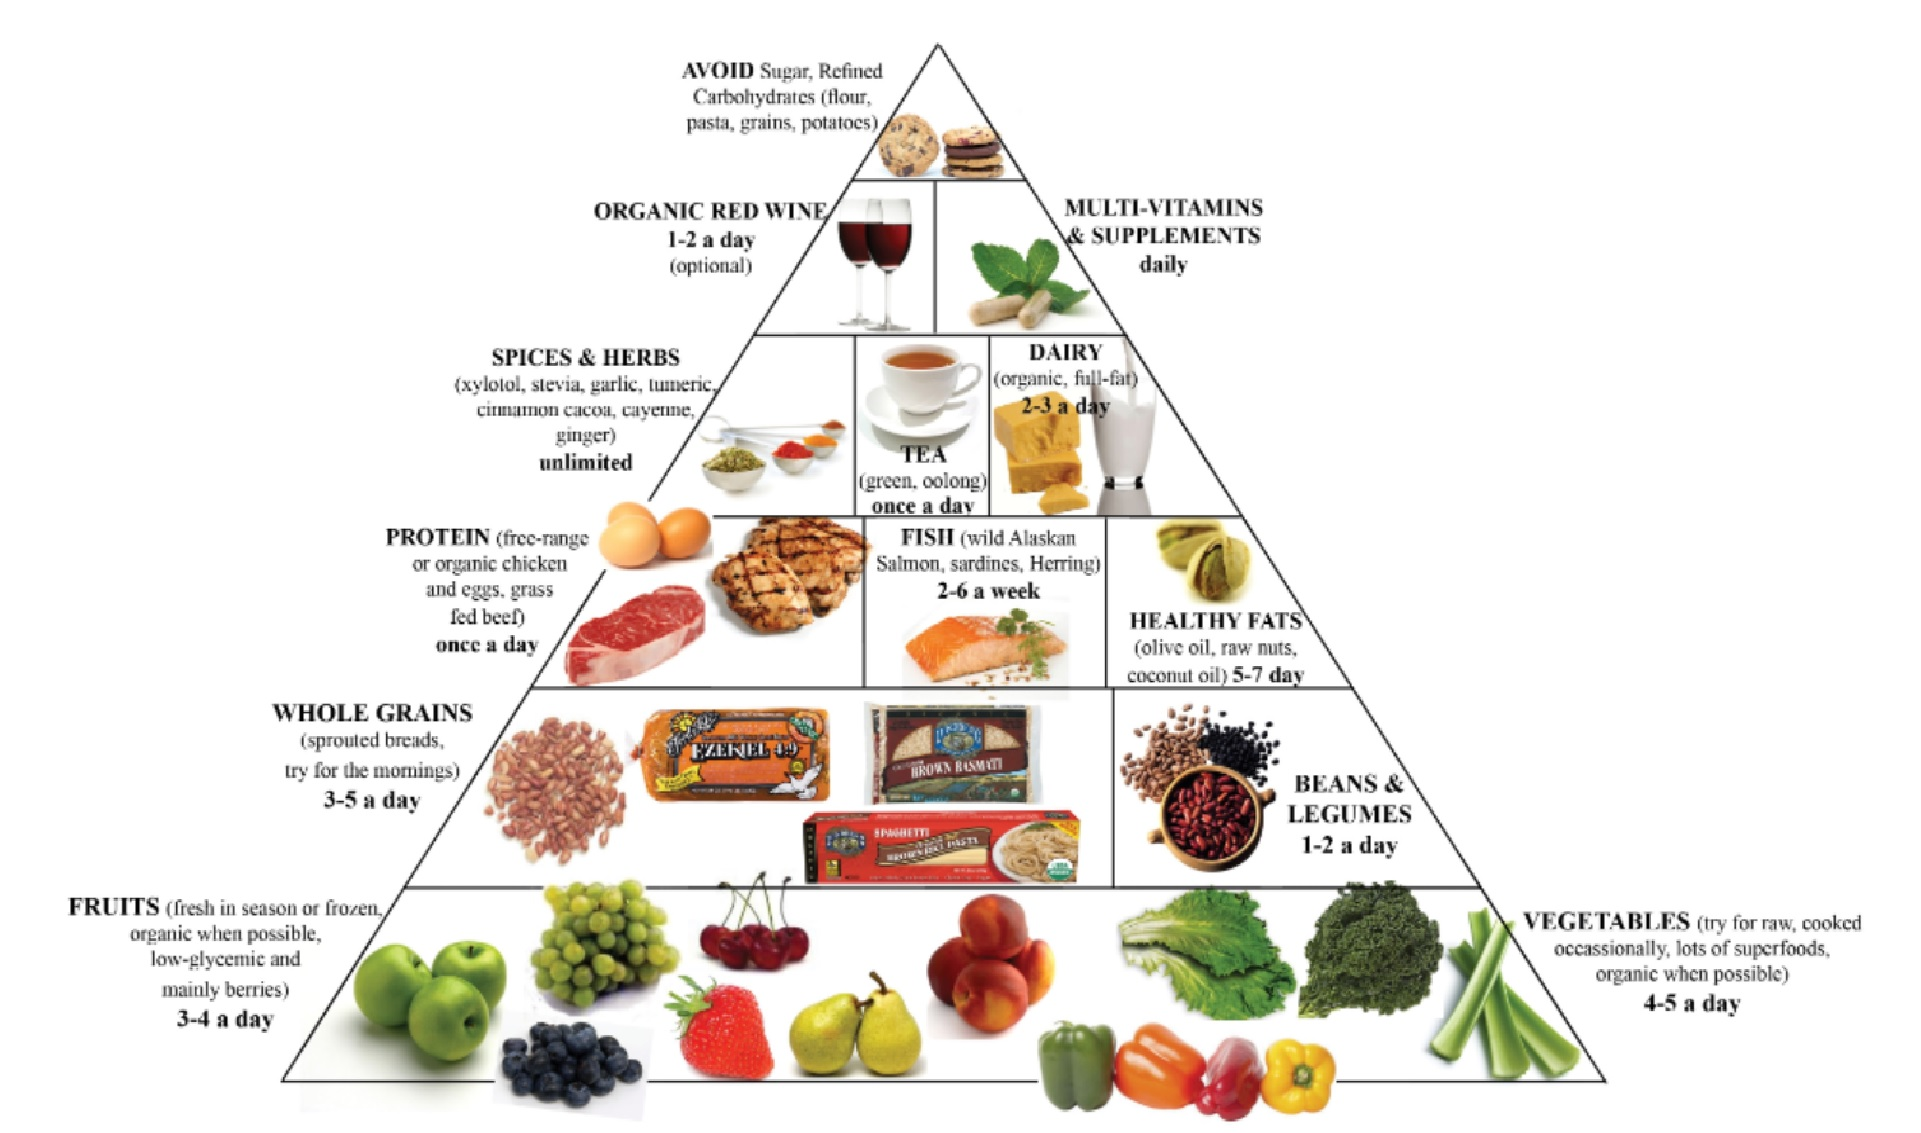 Protein-carbohydrate diet or protein-carbohydrate alternation